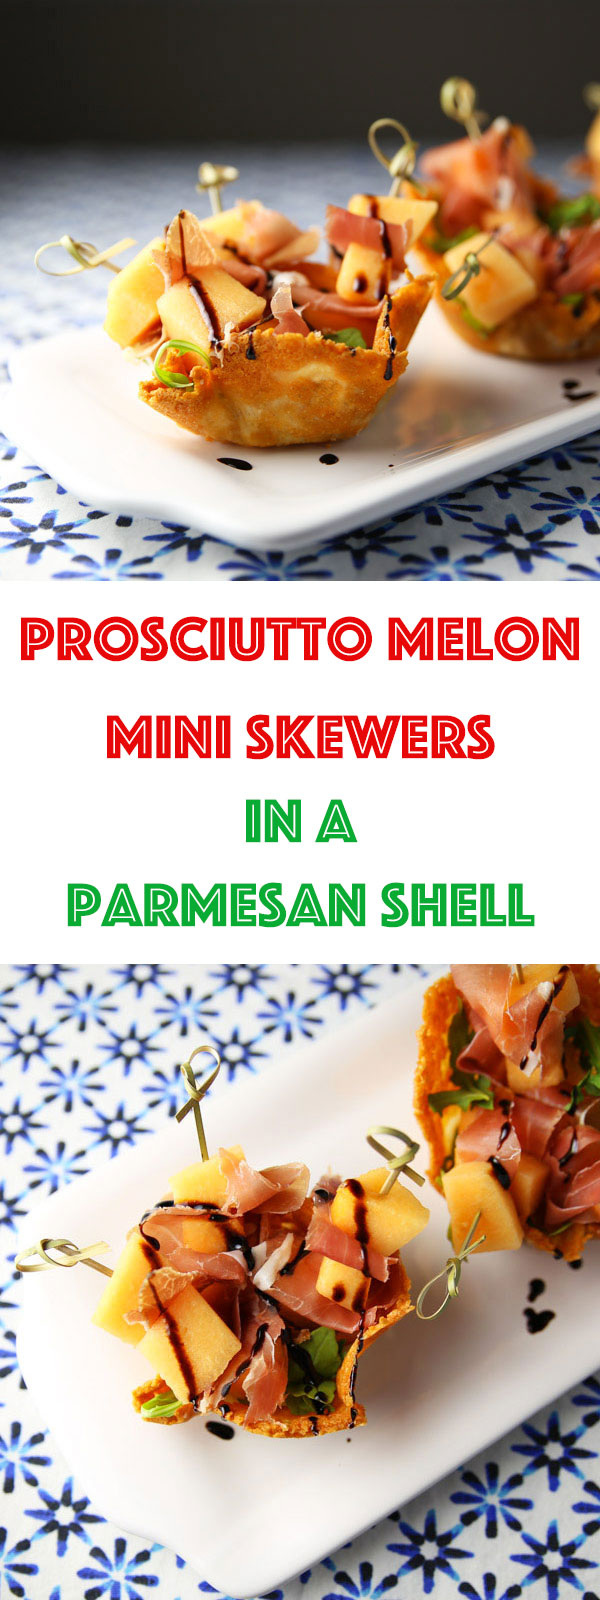 These Prosciutto and Melon Mini Skewers in a Parmesan Basket are a fun, unique, and delicious appetizer that everyone will love!